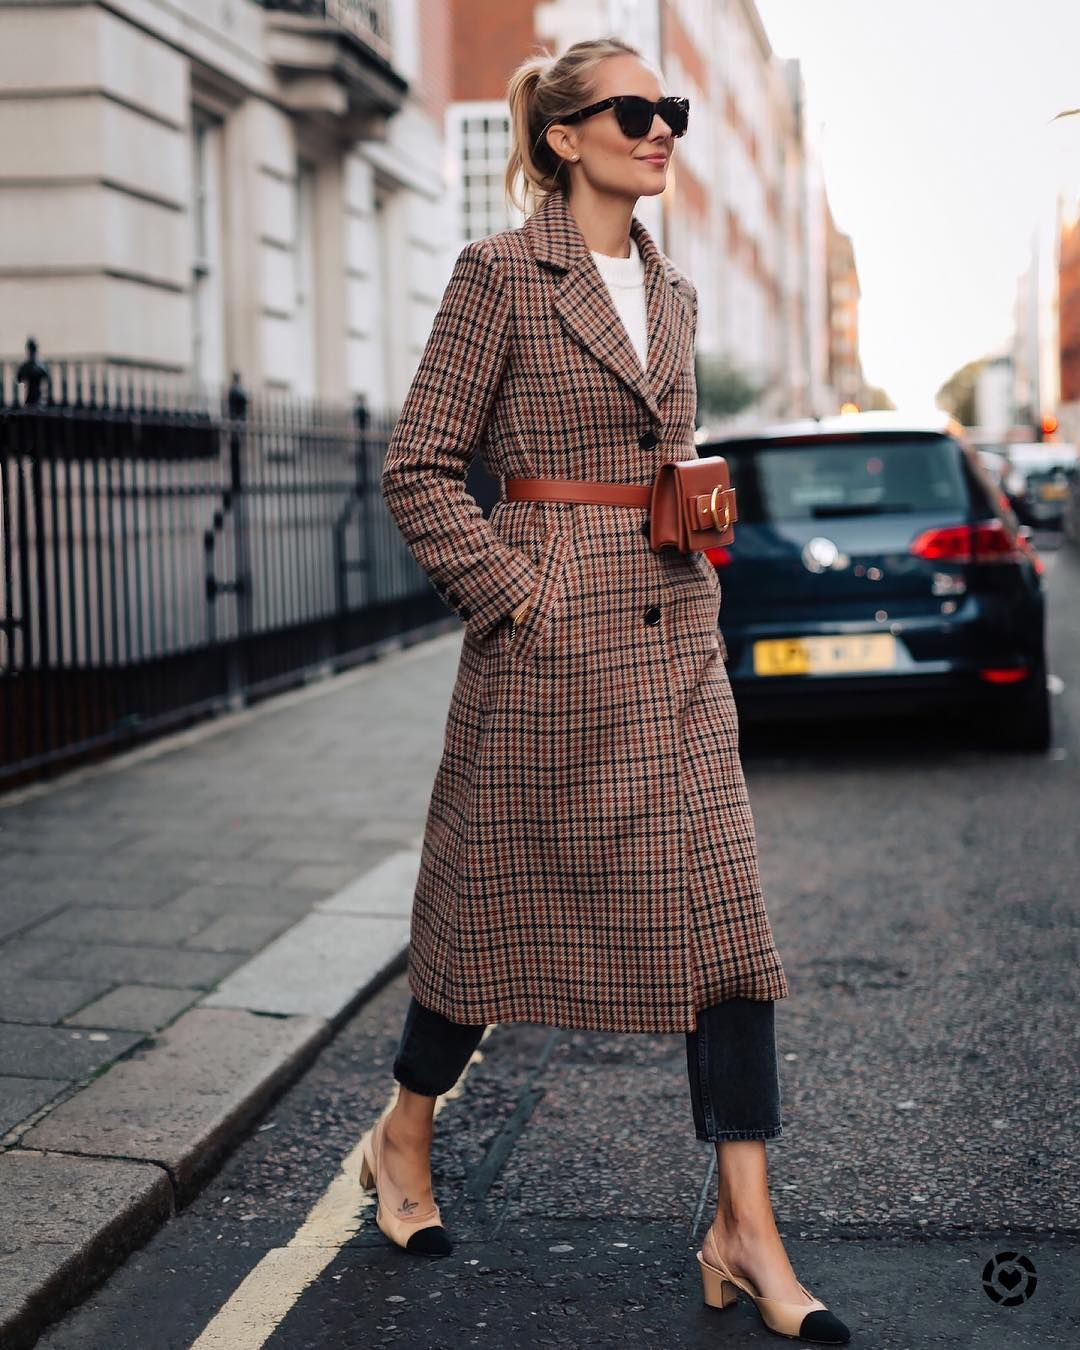 "ce2a8200e8 Amy Jackson    Fashion Jackson on Instagram  ""Probably my favorite outfit I  wore in London! Definitely getting on board with the belt bag trend."